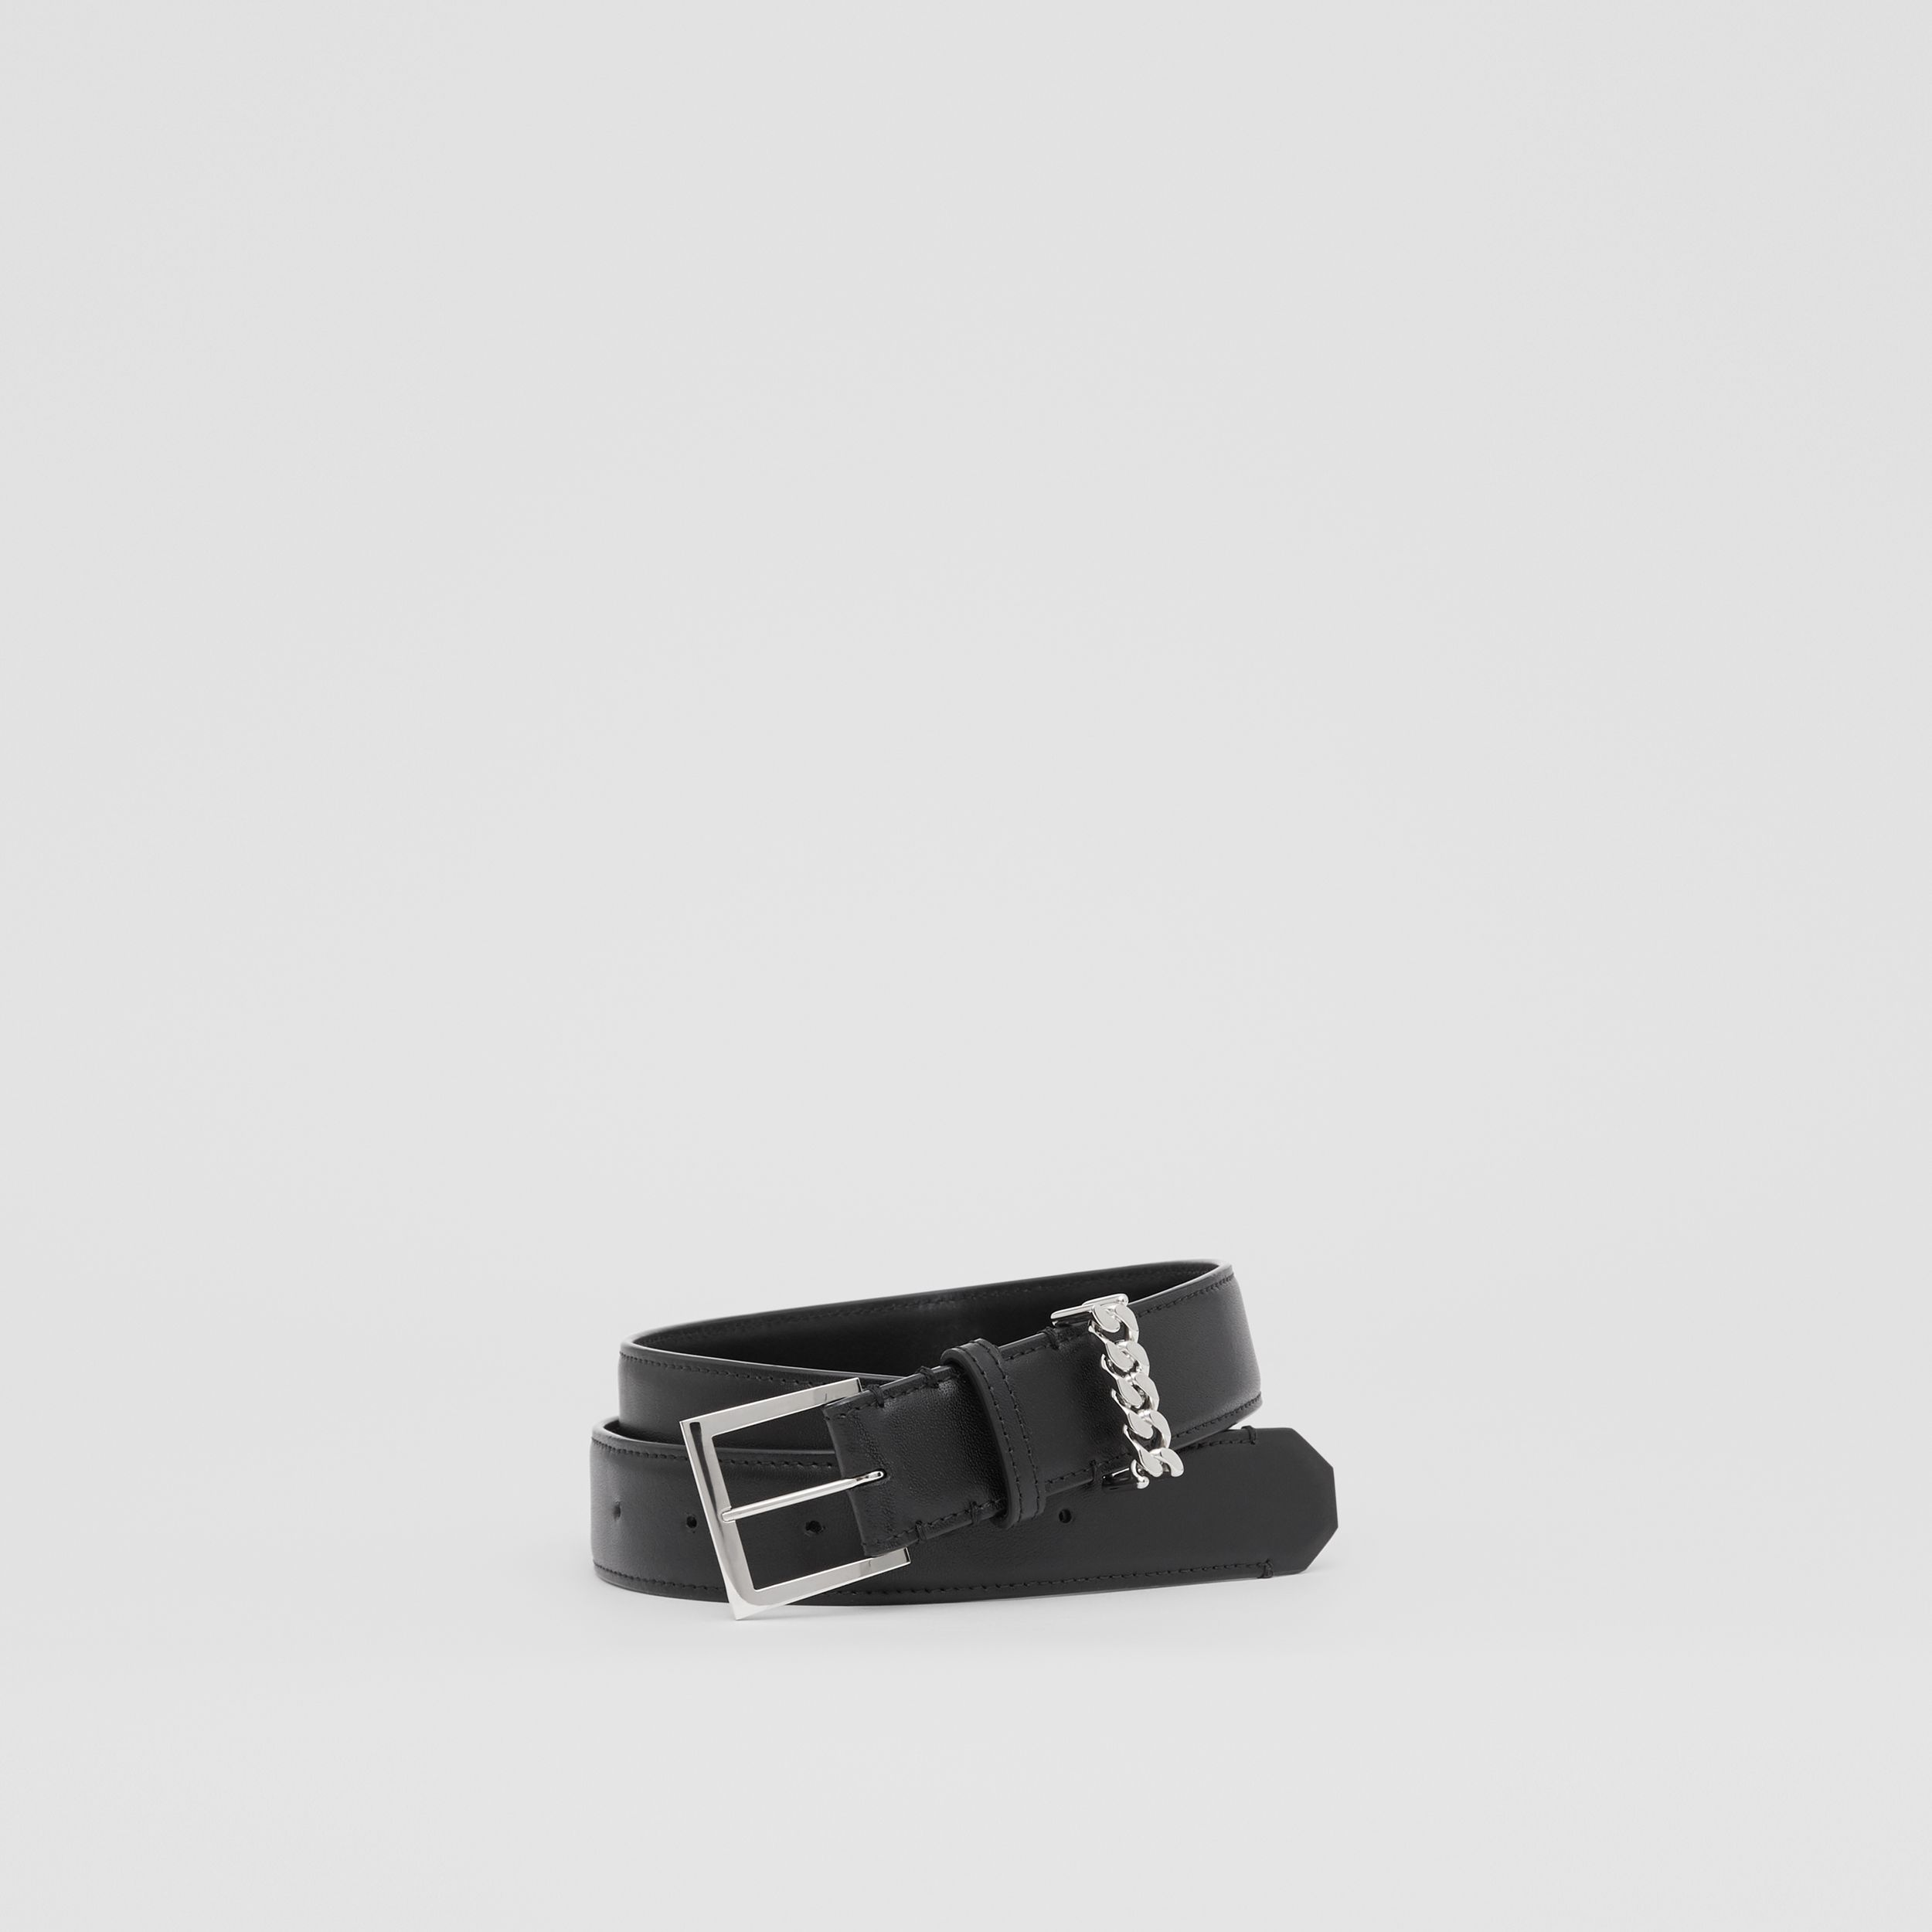 Chain Detail Leather Belt in Black/palladium - Women | Burberry - 1